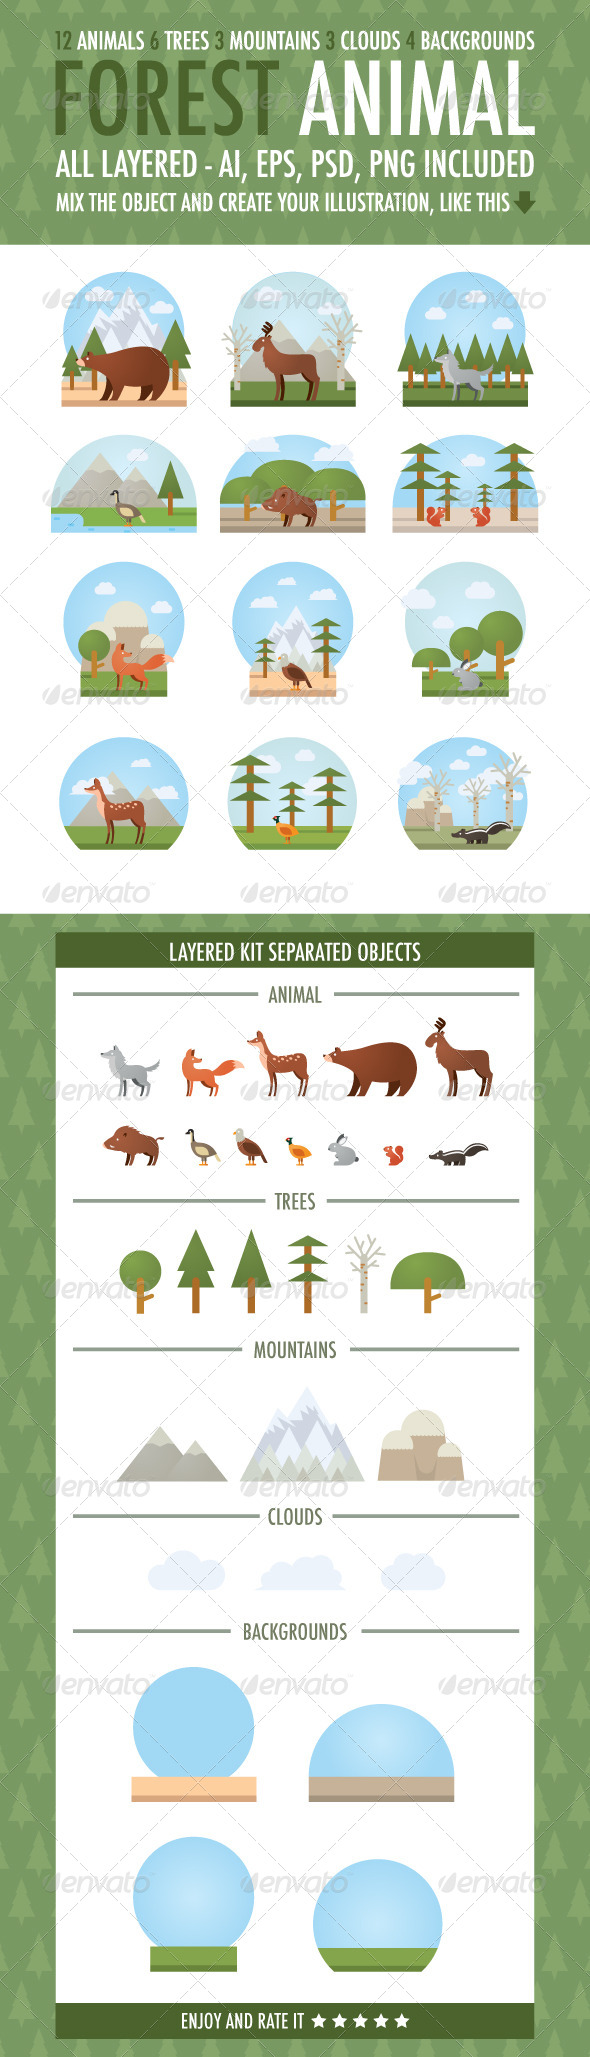 Forest Animal Vector Kit - Animals Characters